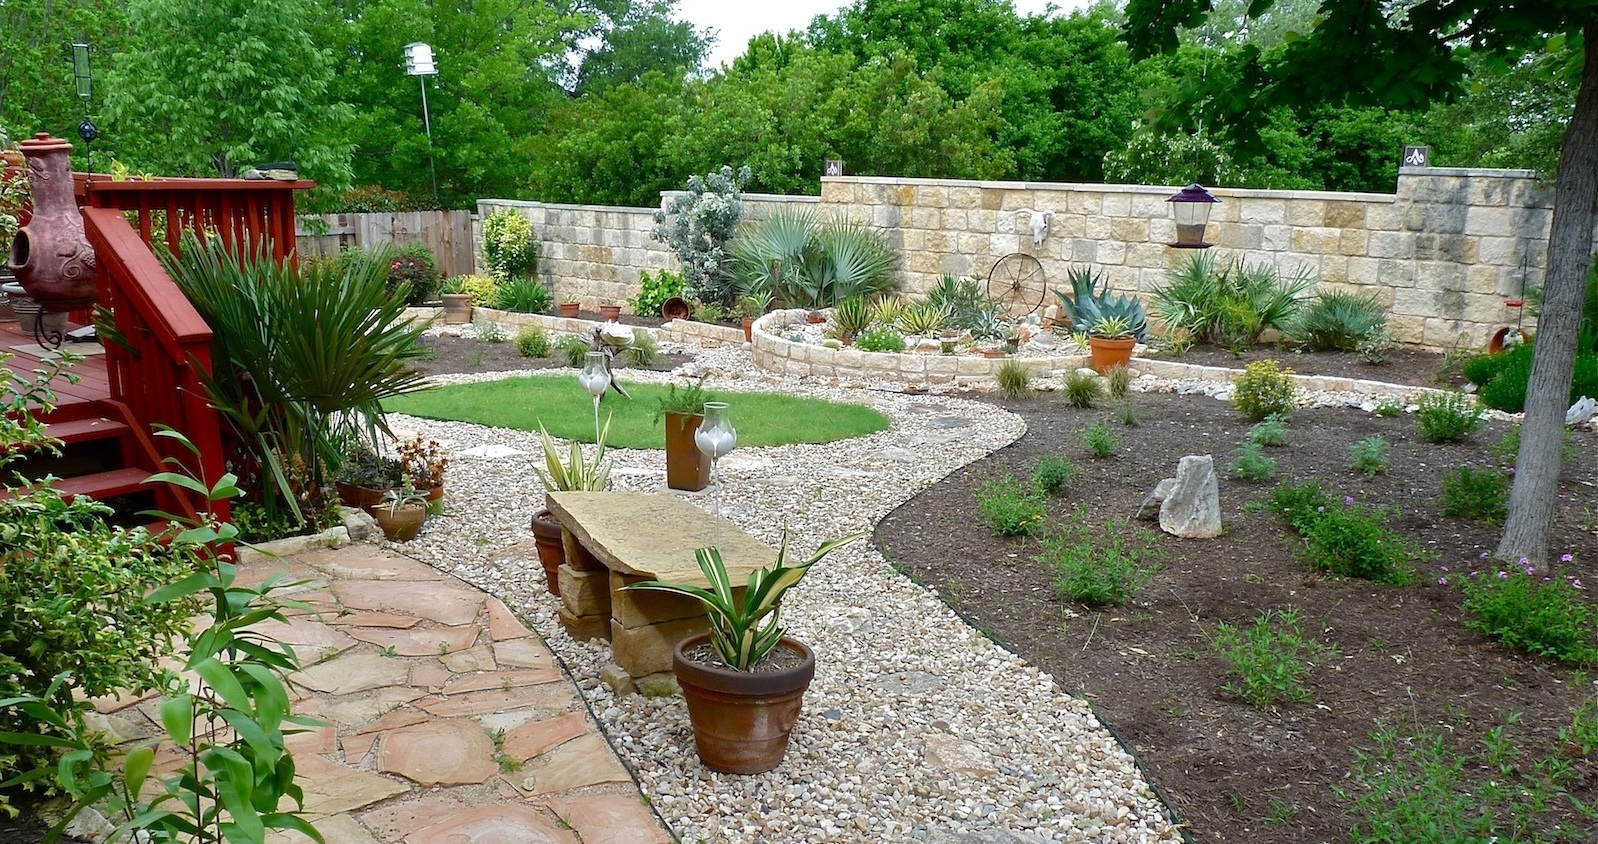 Central Texas Gardening Providing Informational Horticultural Intended For Drought Friendly Landscaping Create Beautiful Drought Friendly Landscaping